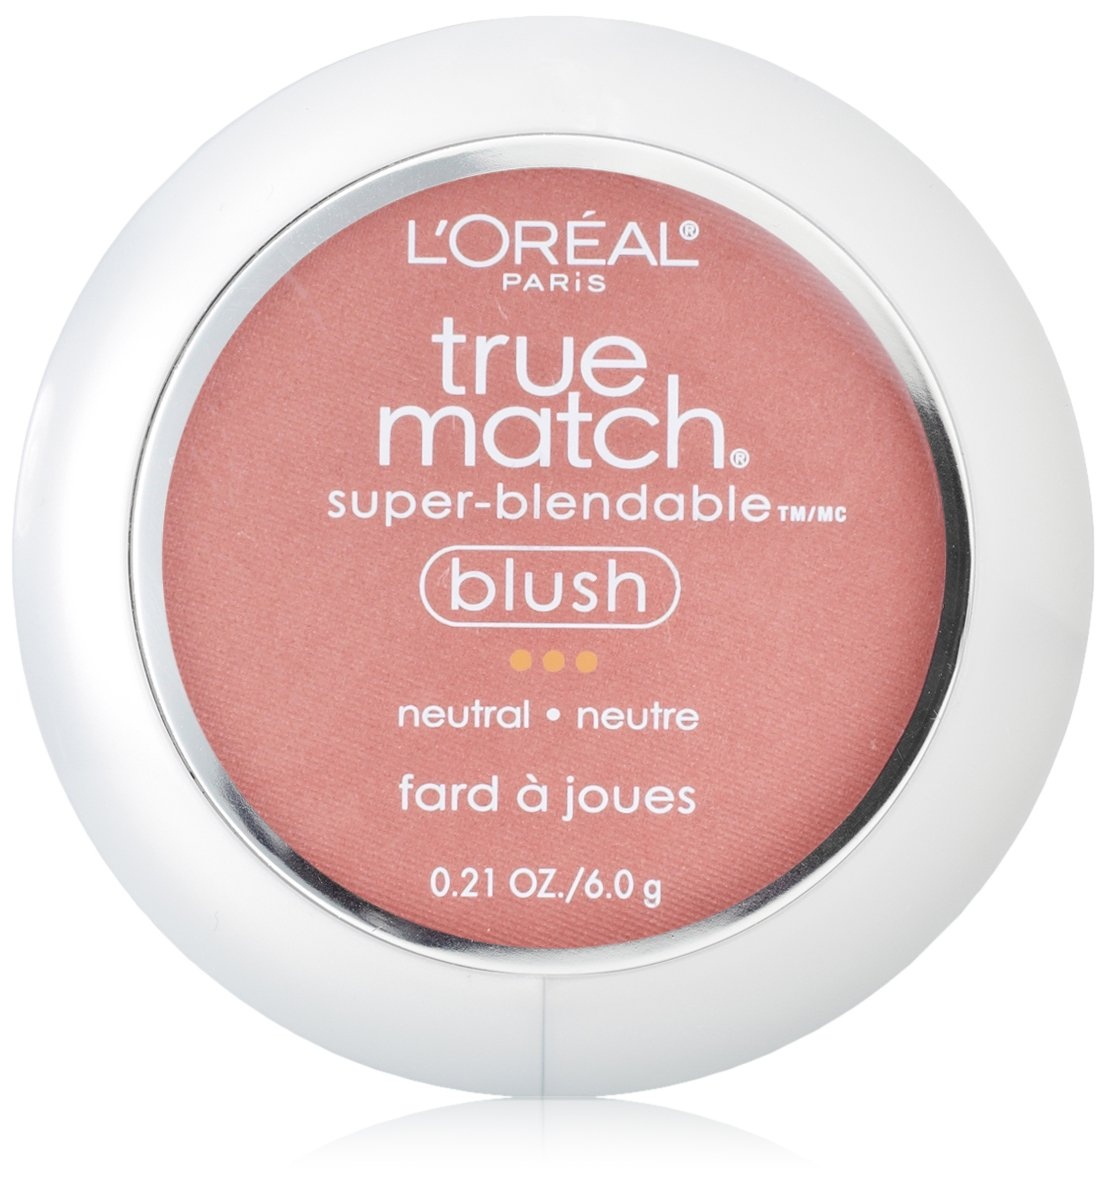 L'Oréal Paris True Match Super-Blendable Blush, Apricot Kiss, 0.21 oz.